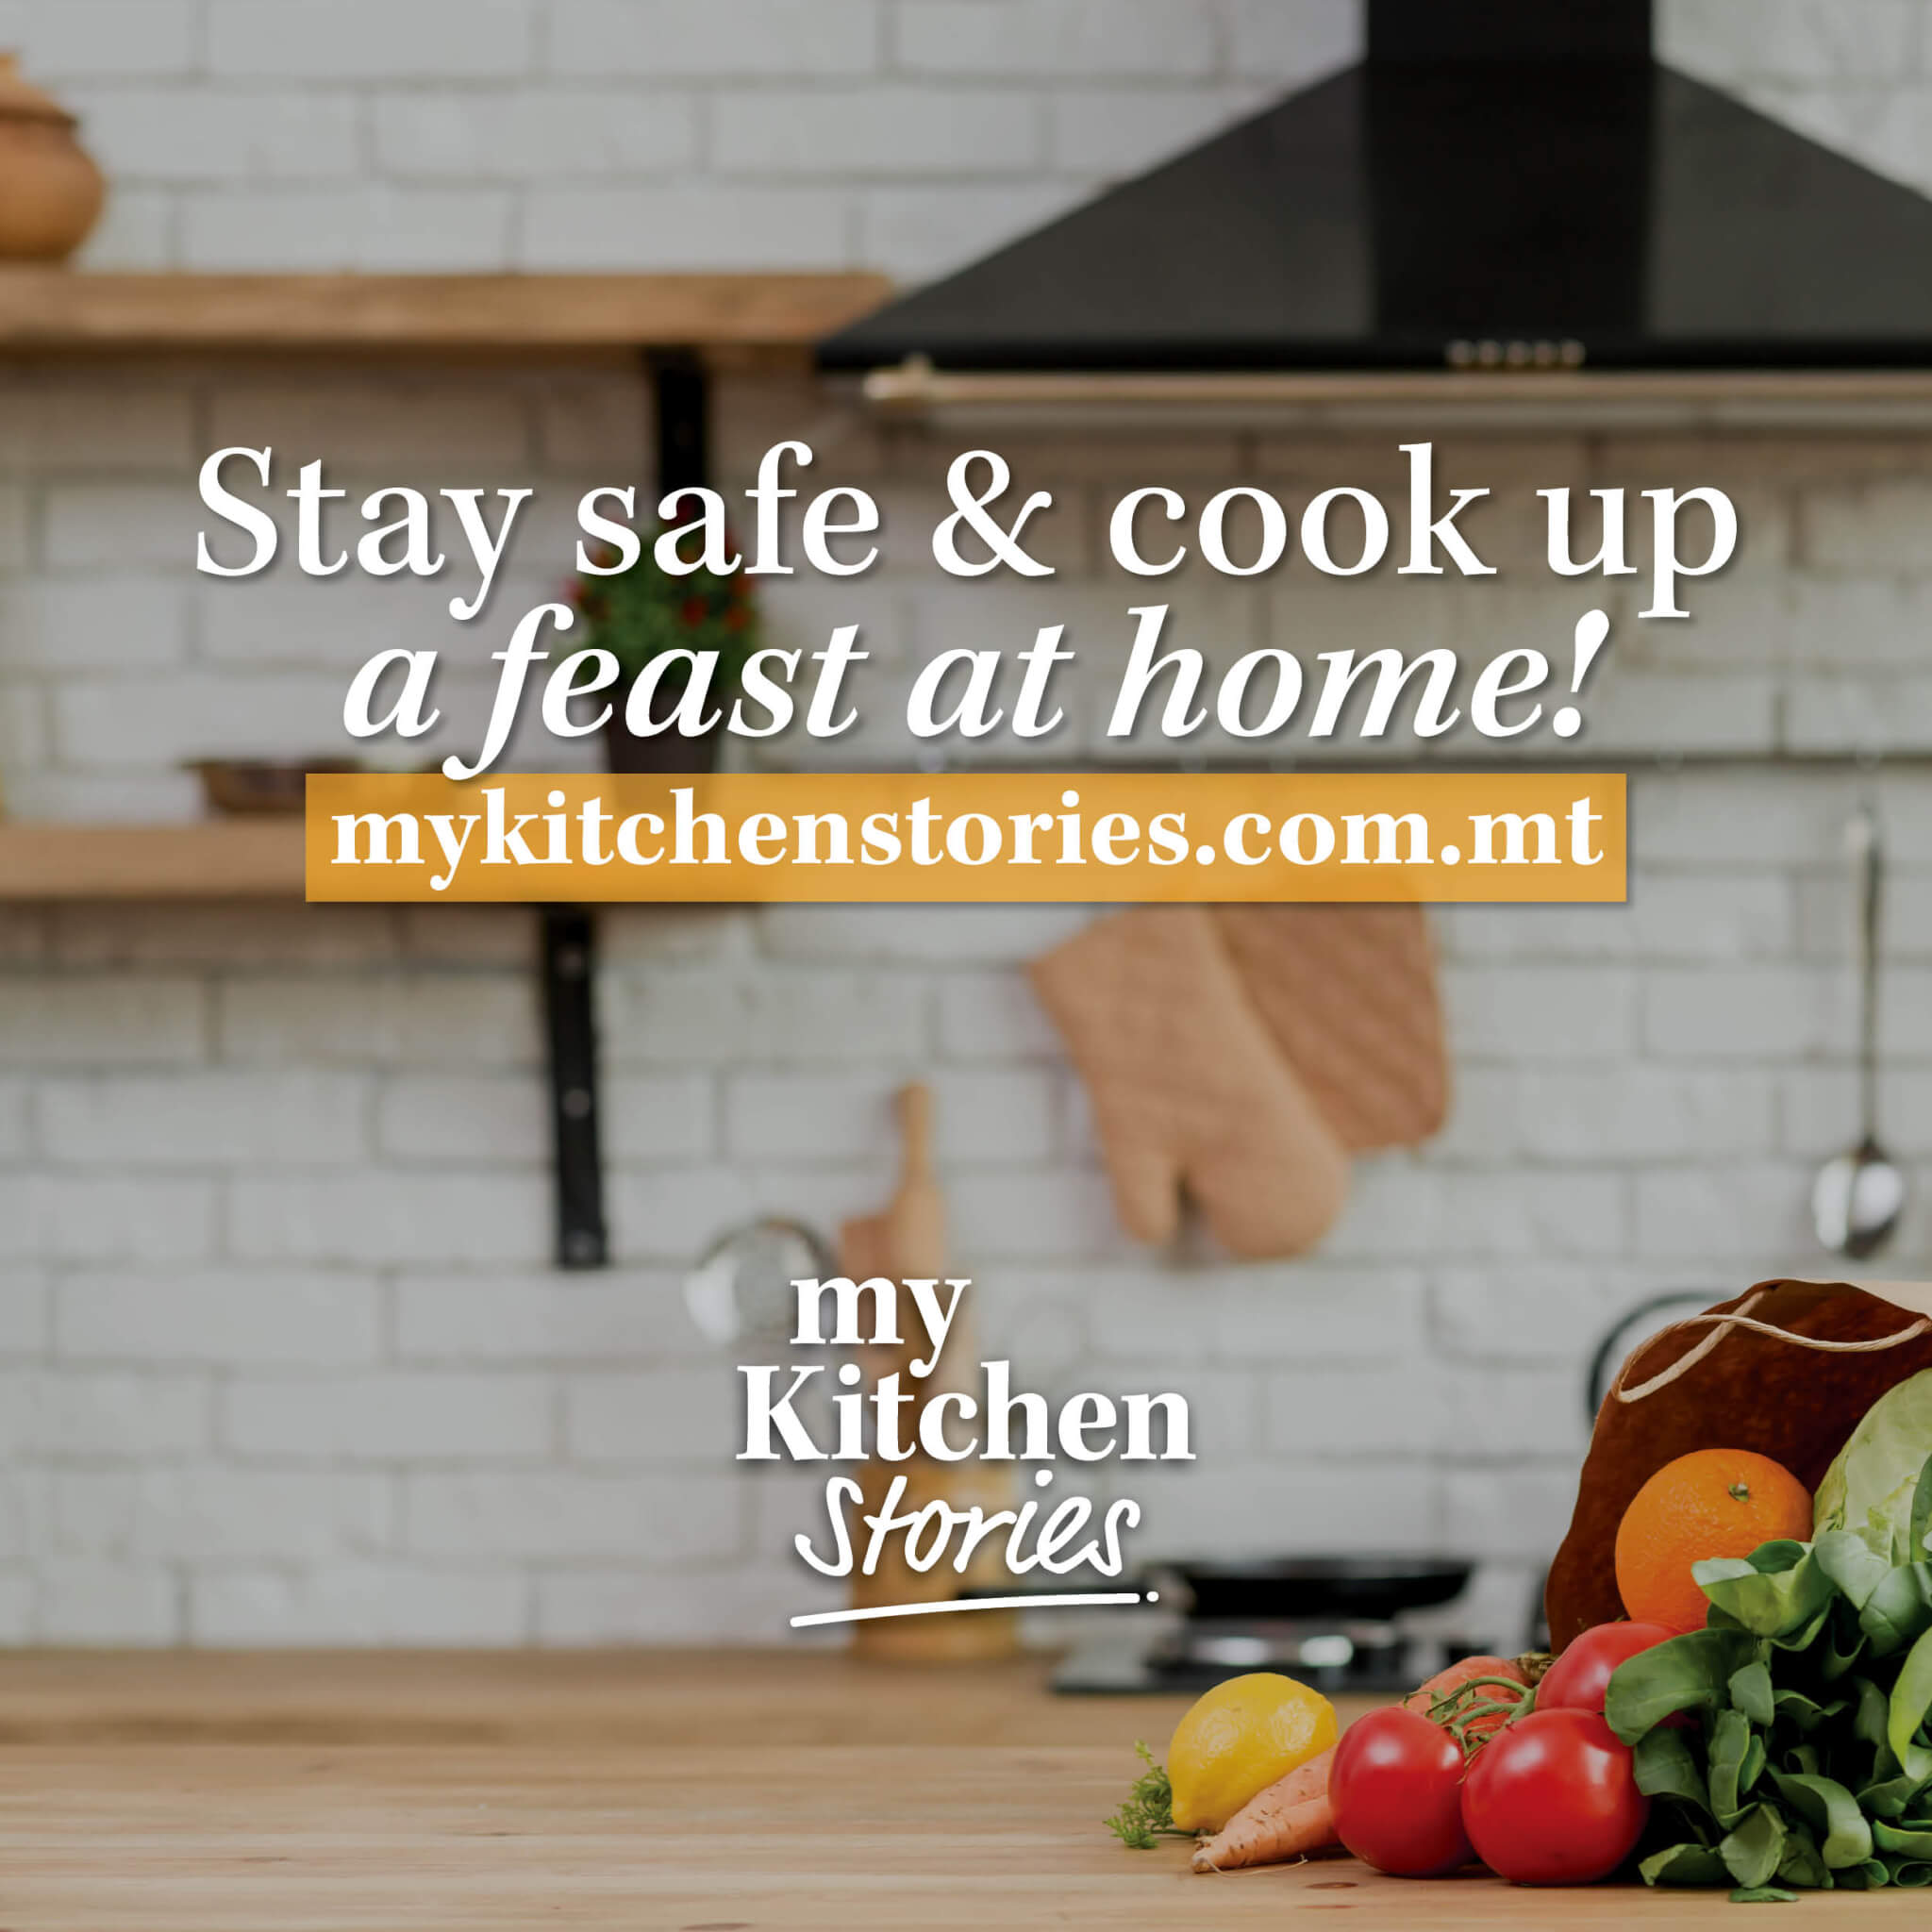 Cook a feast, stay home